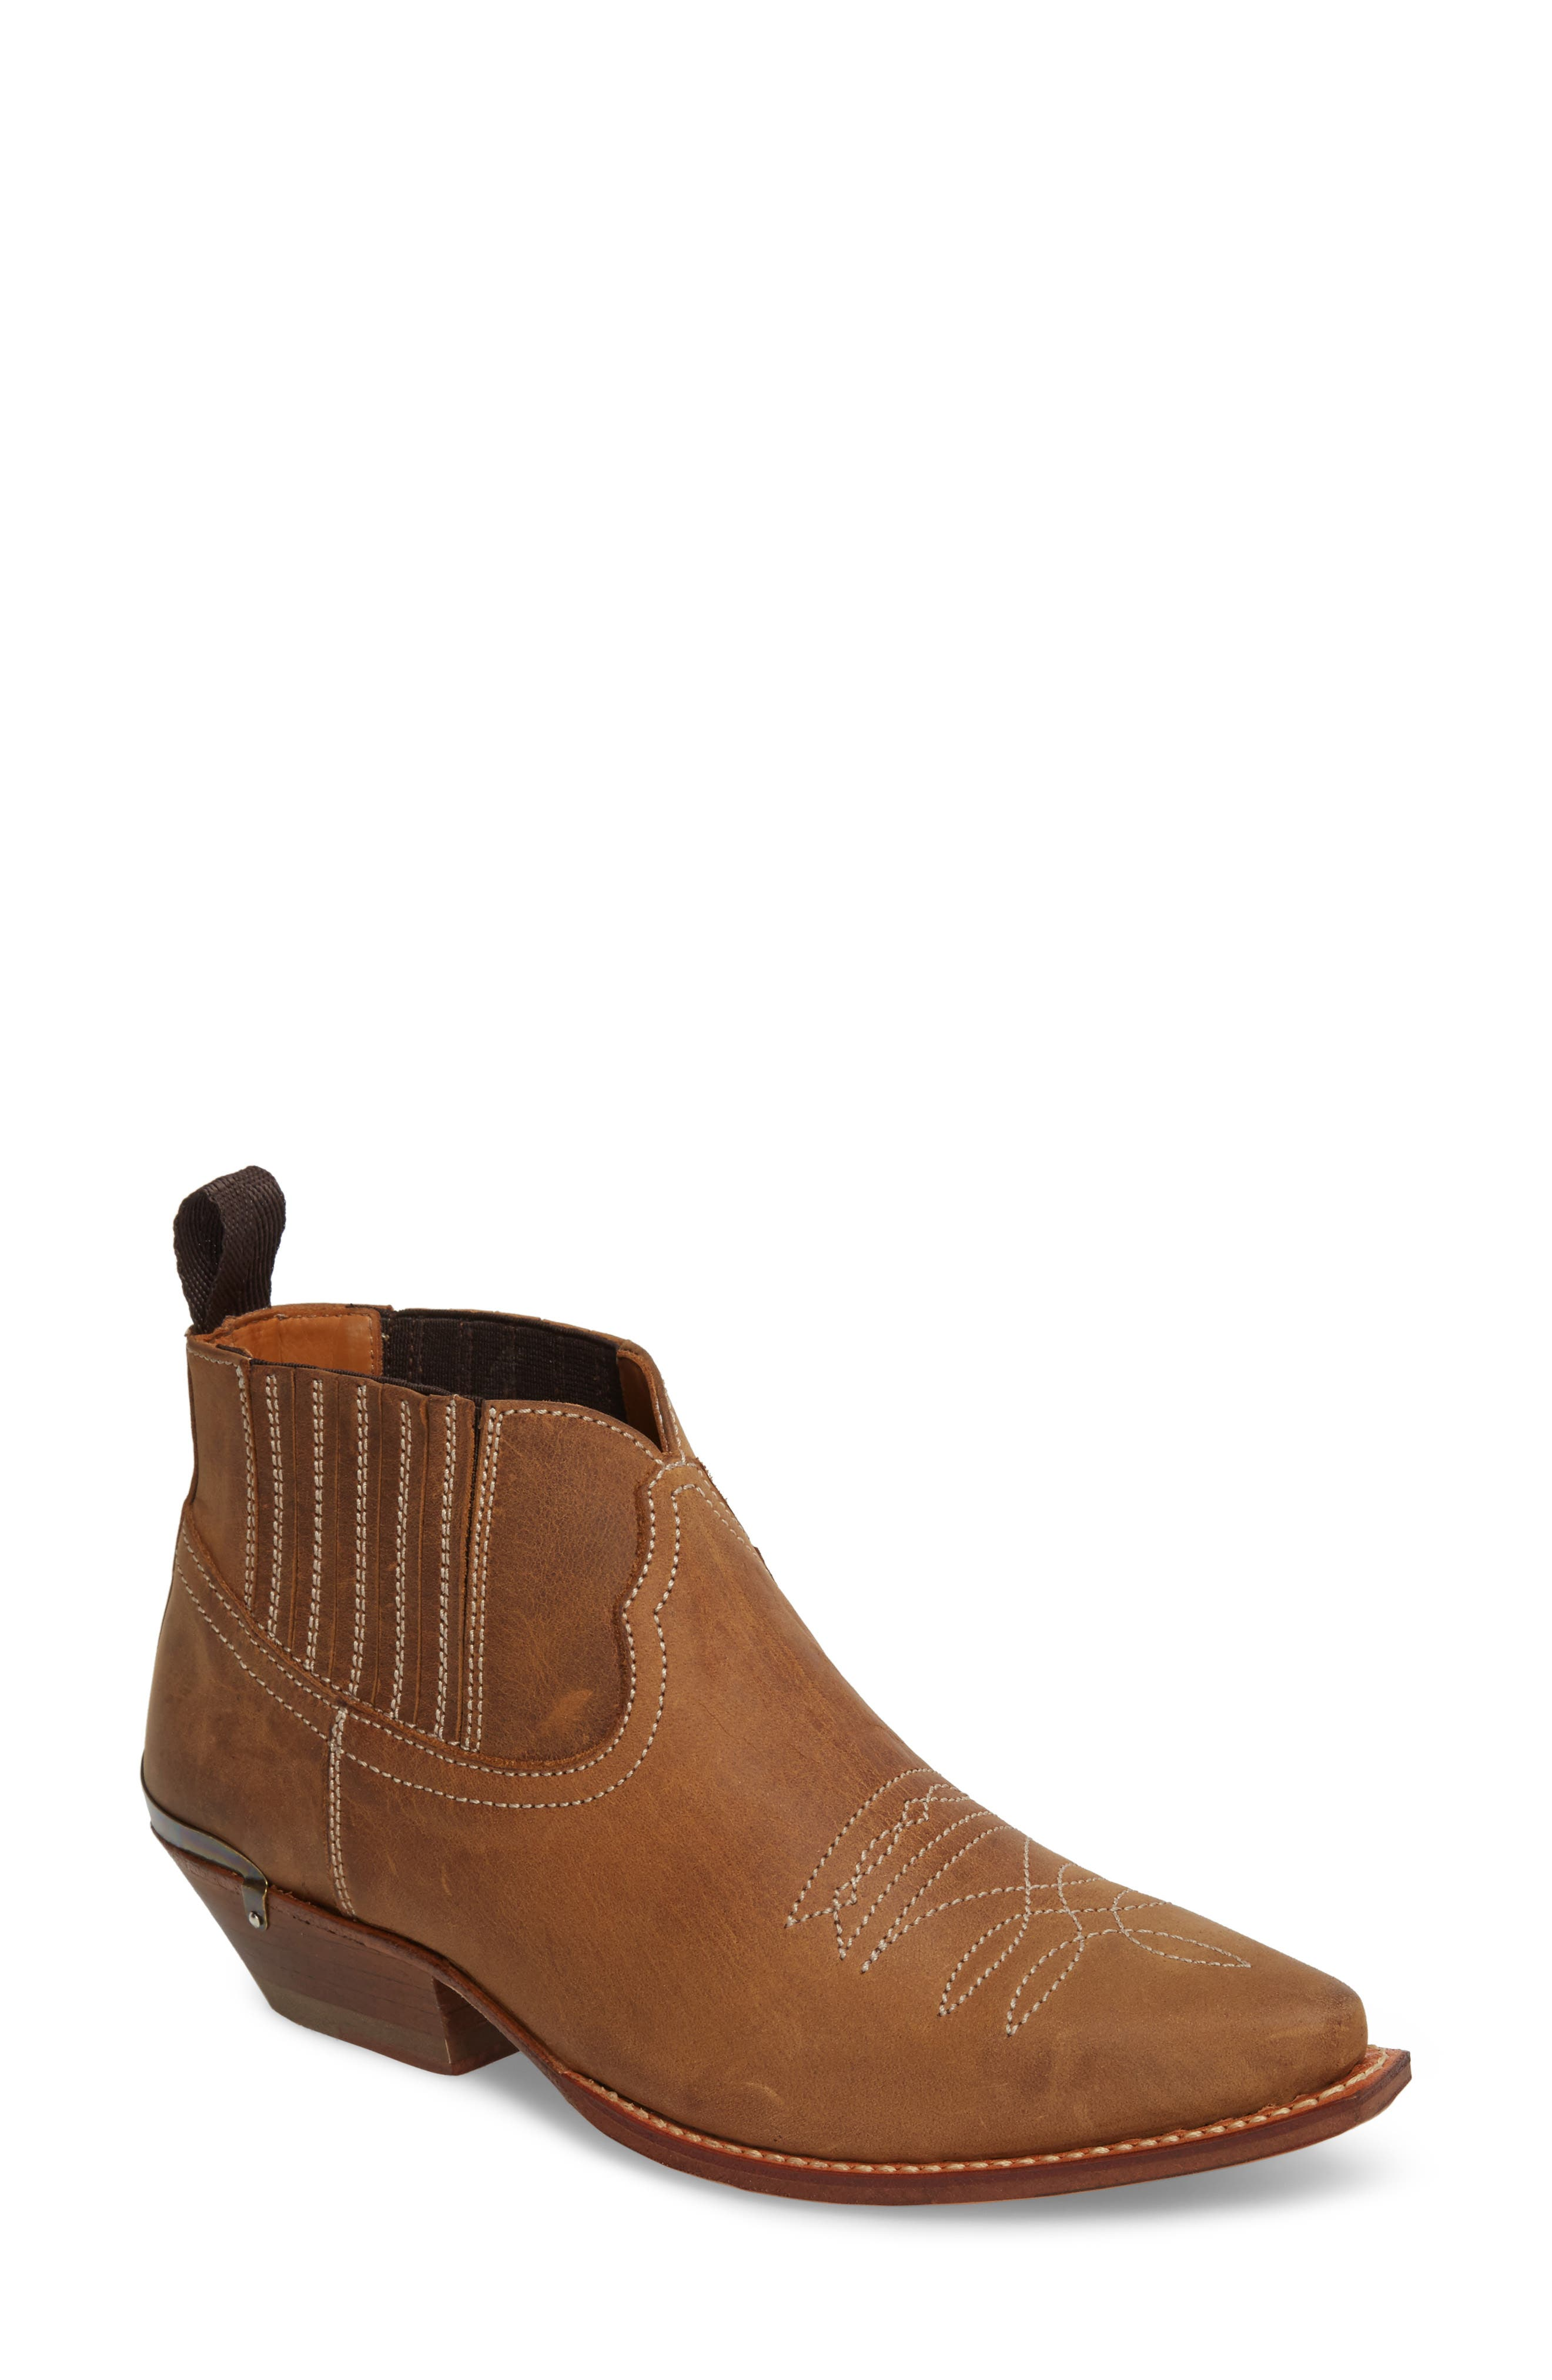 Jalon Western Bootie,                         Main,                         color, 200